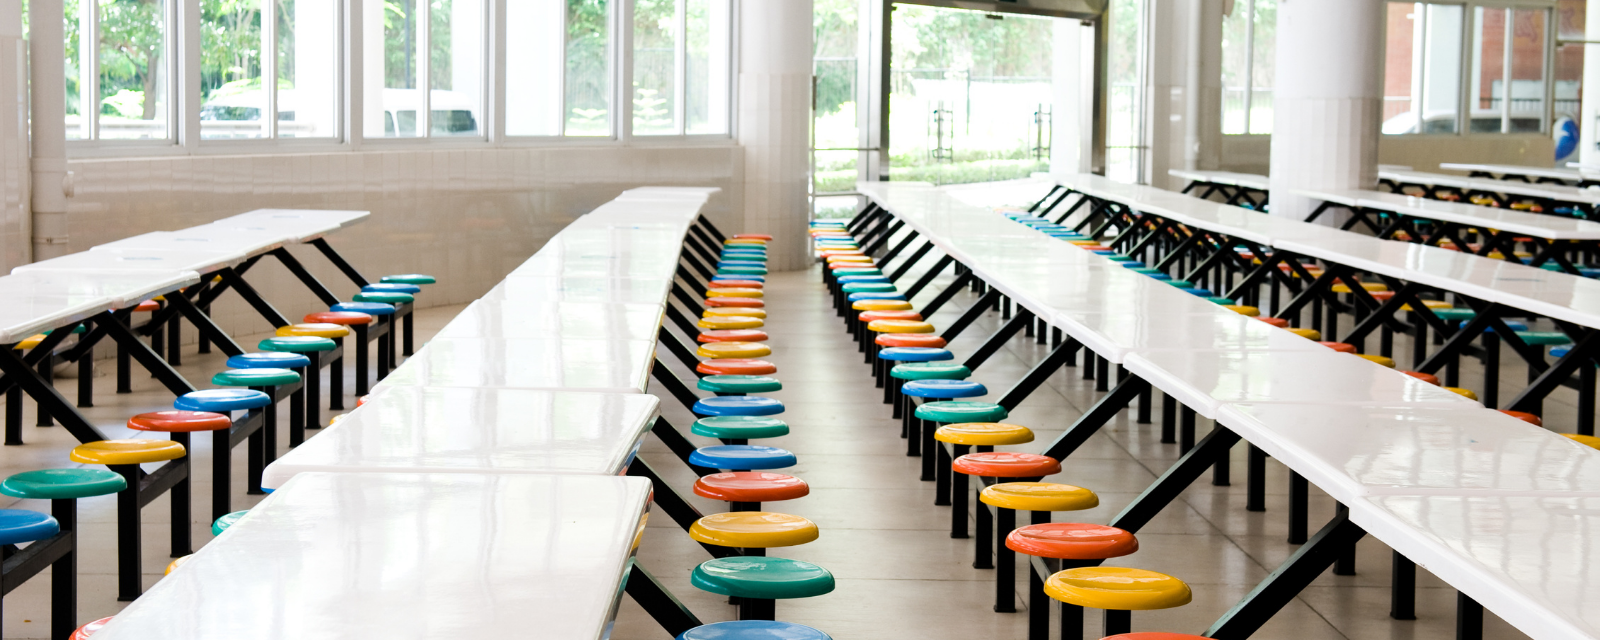 empty cafeteria tables with colorful stools